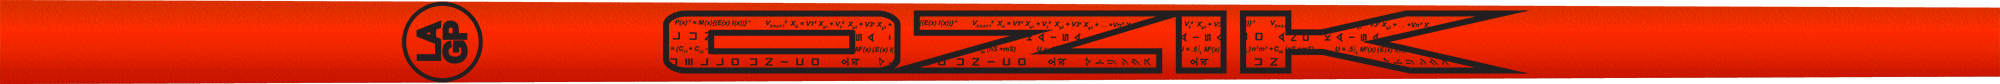 Ozik White Tie: Ferrari Red Black Textured - Wood 50 S